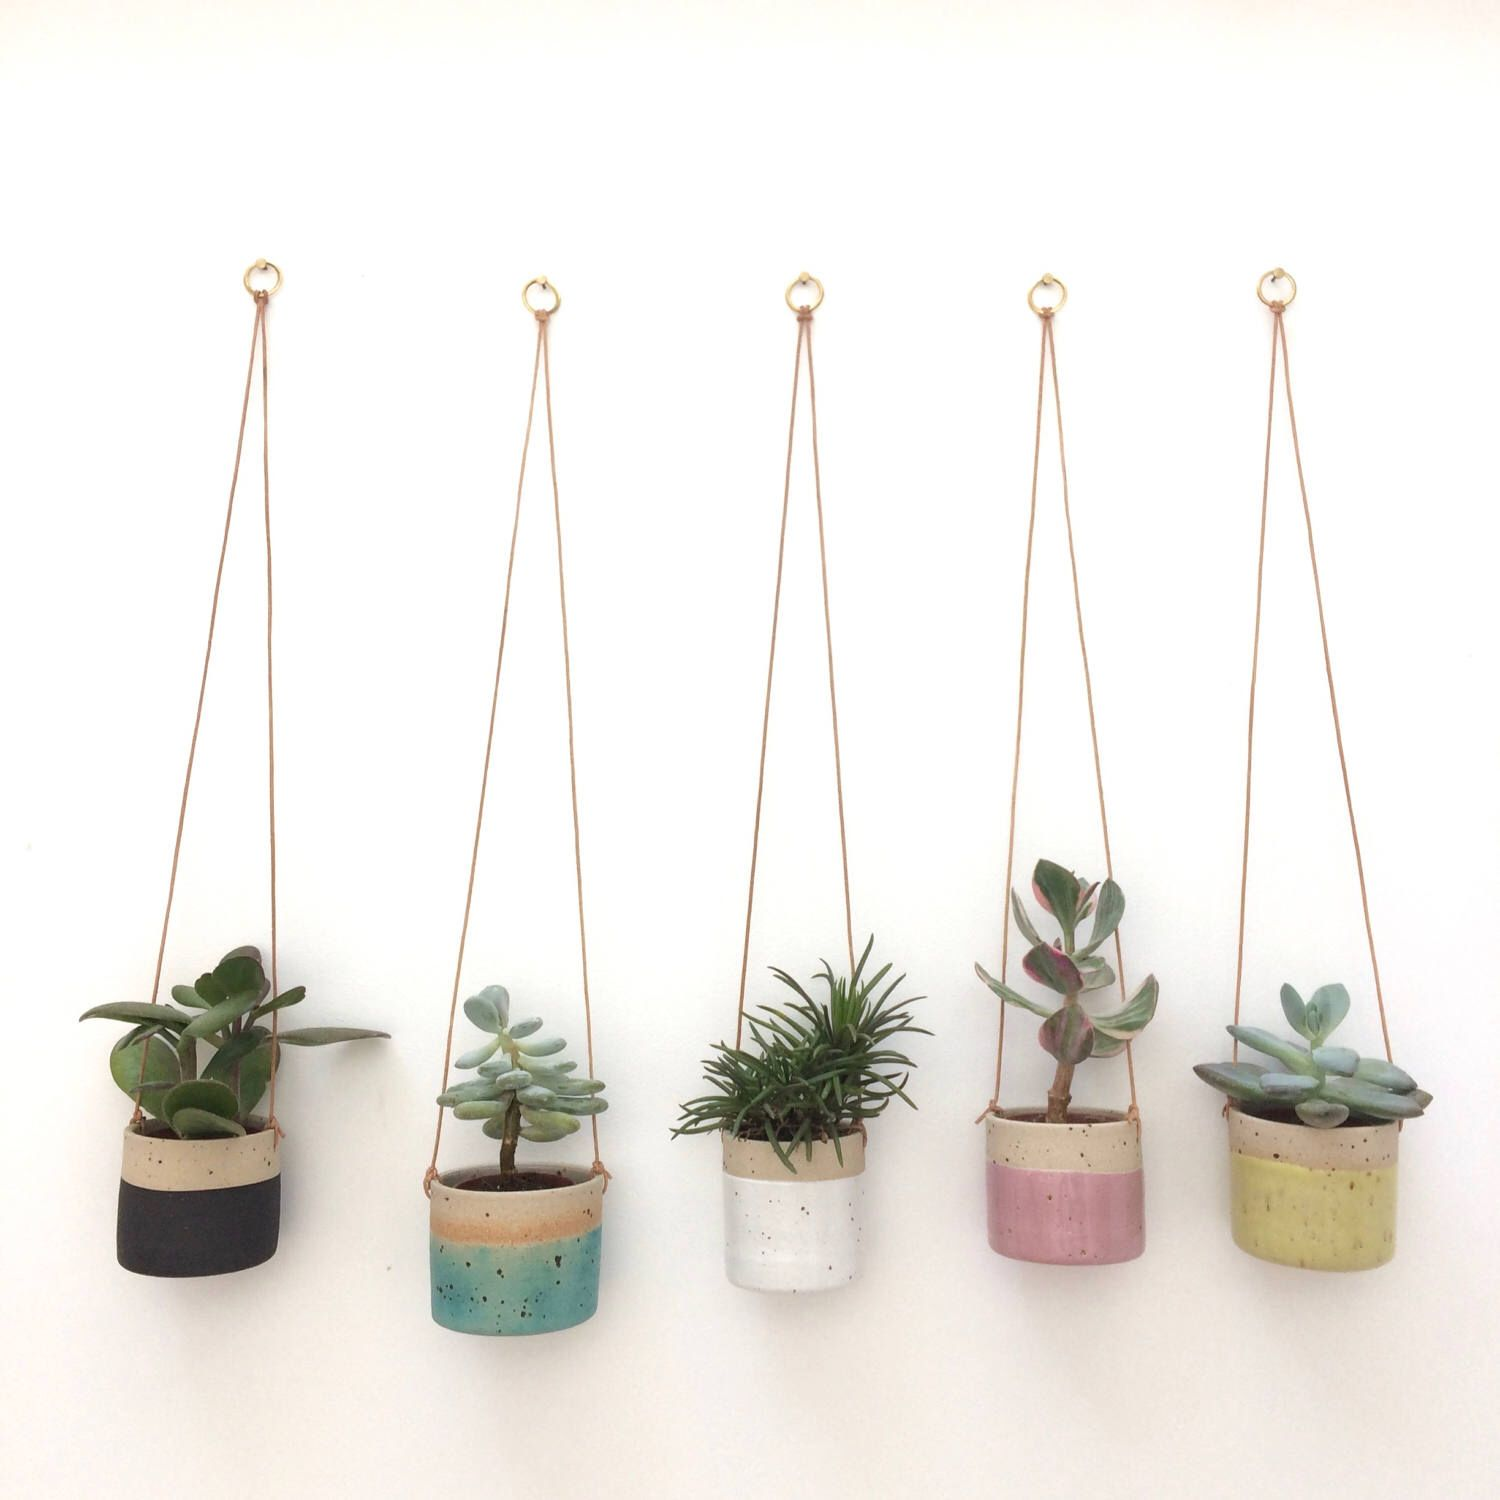 Black handmade ceramic hanging planter small pre order for 5th feb 2018 shipping by